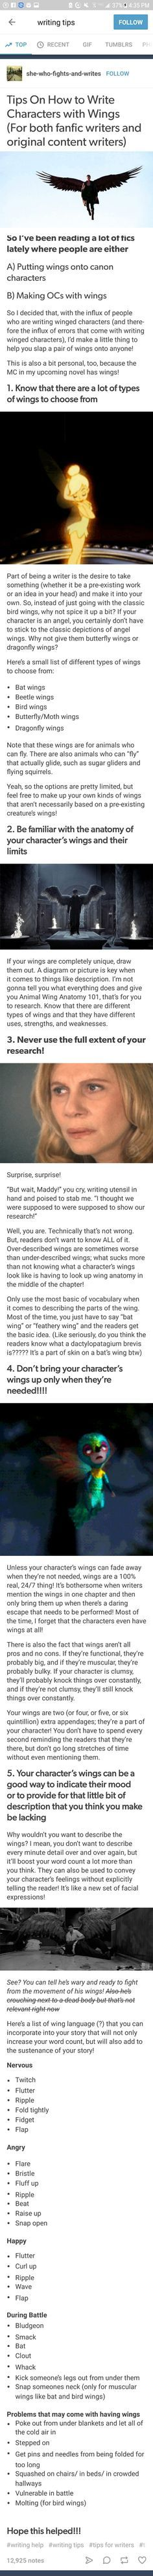 Image result for wings writing prompt